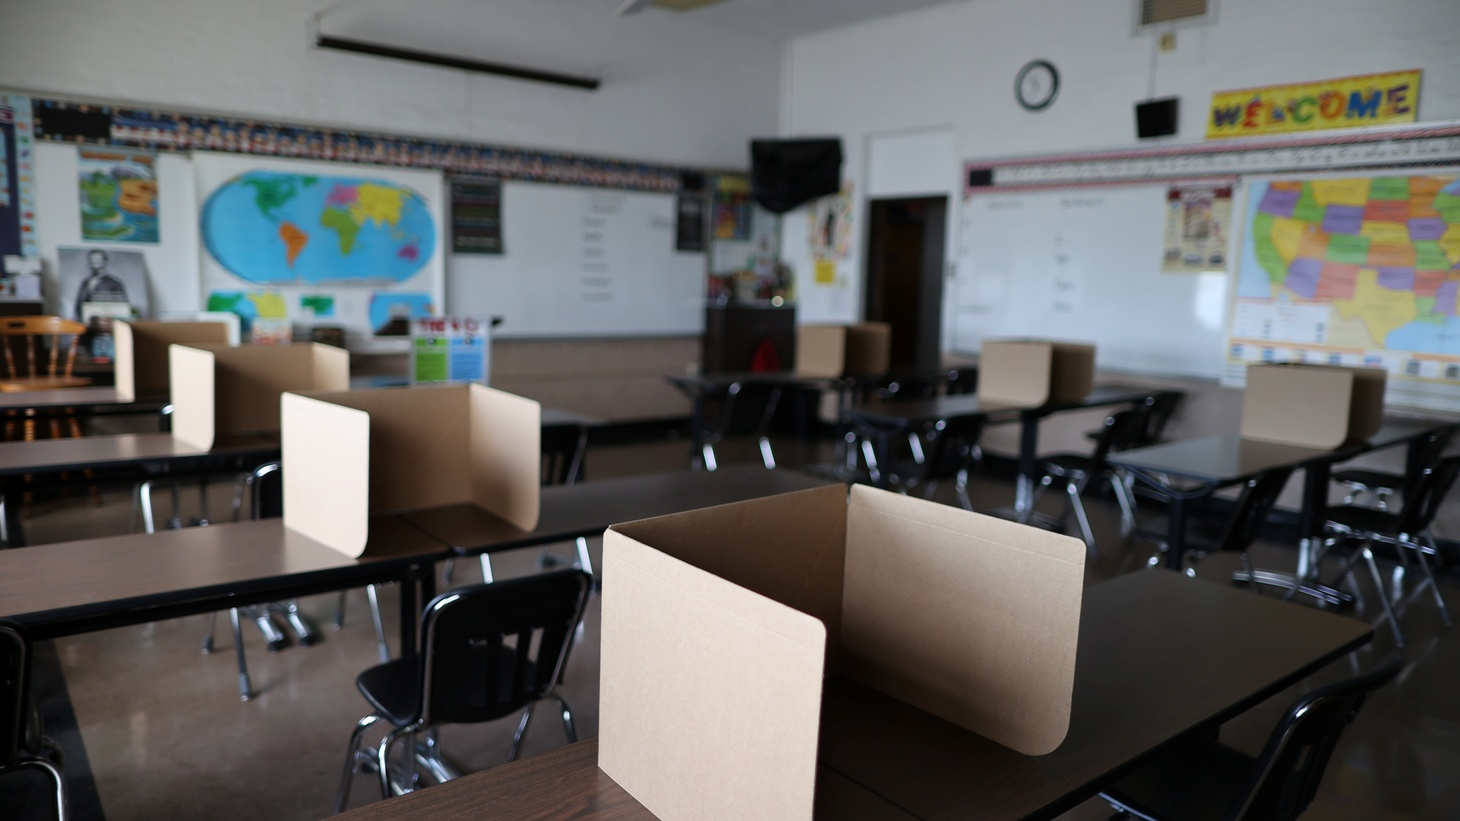 Social distancing dividers for students are seen in a classroom at St. Benedict School, amid the outbreak of the coronavirus disease (COVID-19), in Montebello, near Los Angeles, California, U.S., July 14, 2020.